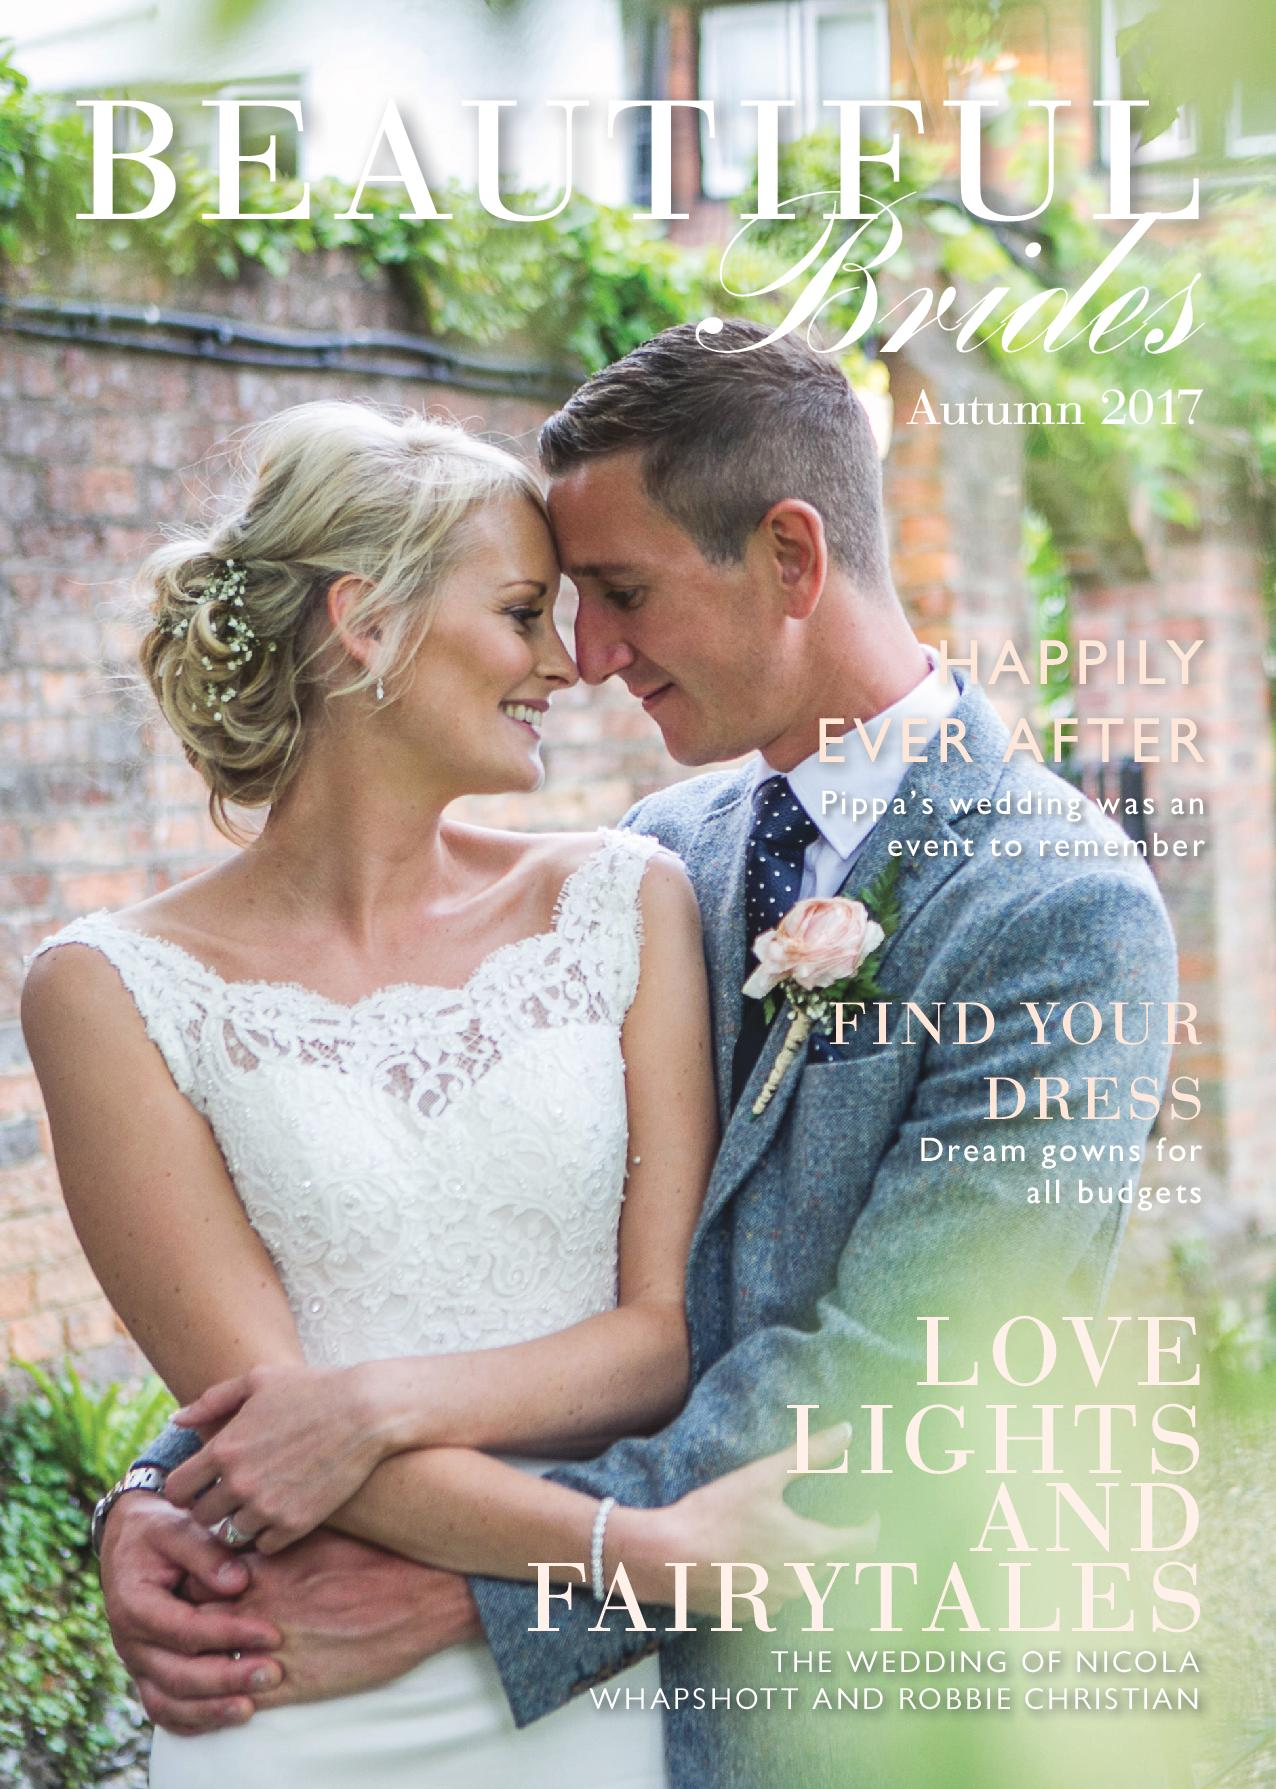 CALLING ALL BRIDES- Want to feature in our wedding magazine?